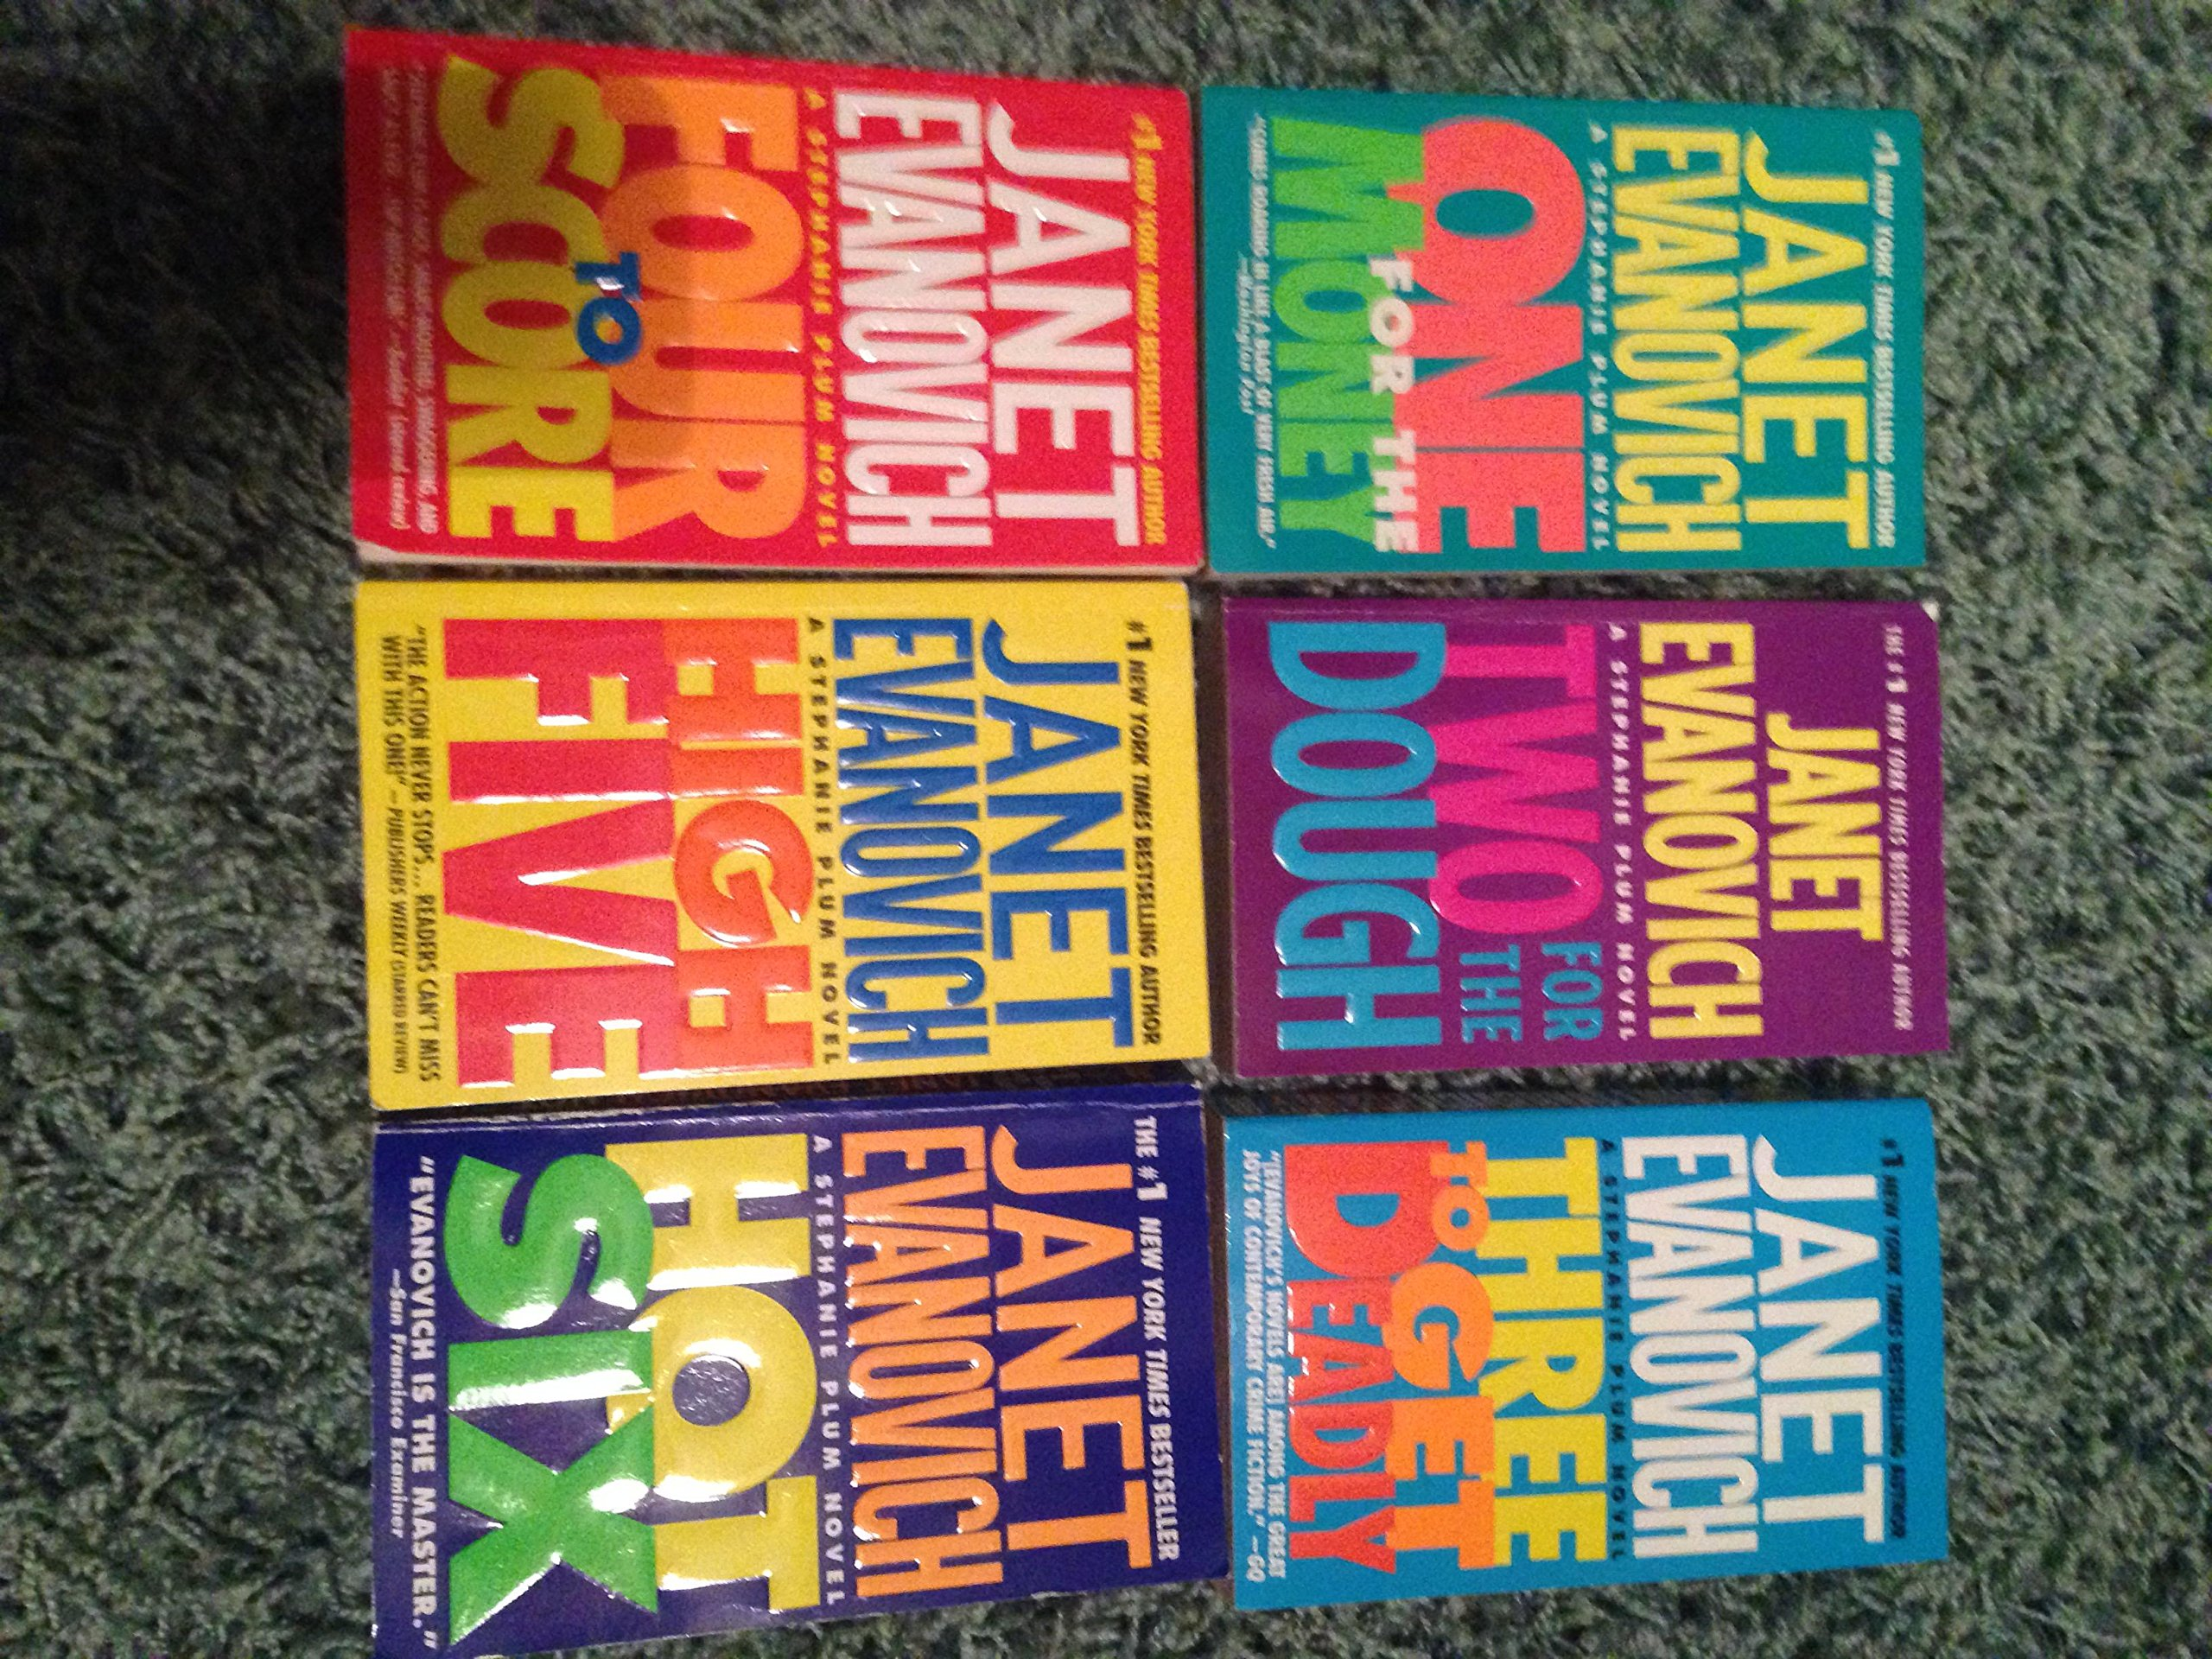 Download Janet Evanovich's Stephanie Plum Books 1-6 (One for the Money,Two for the Douth,Three to Get Deadly,Four to Score,High Five,Hot Six pdf epub